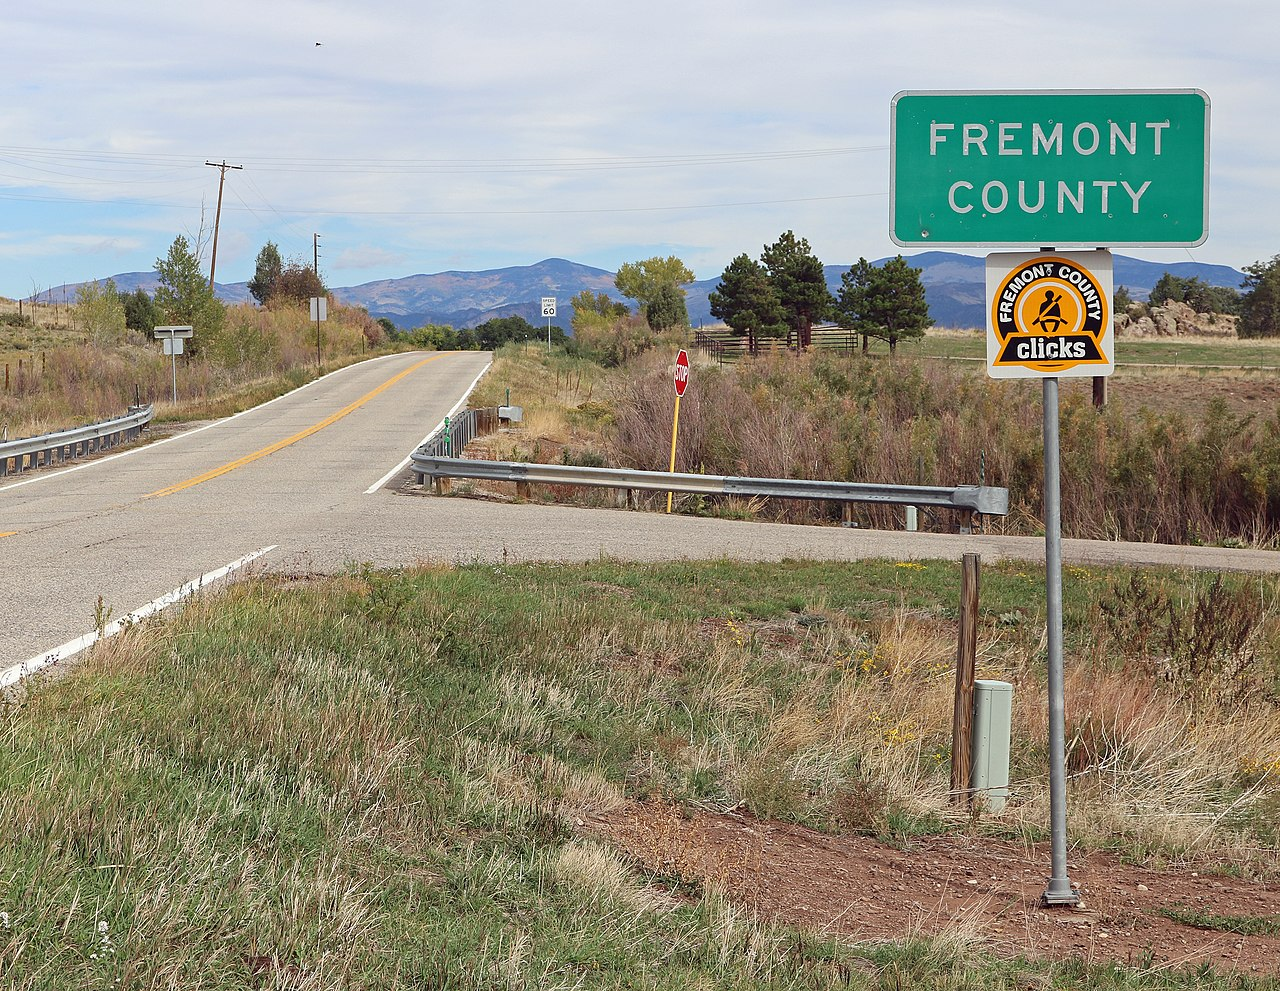 Fremont County, Colorado, is being recognized for being a leader in how it identifies and helps its homeless veteran population.